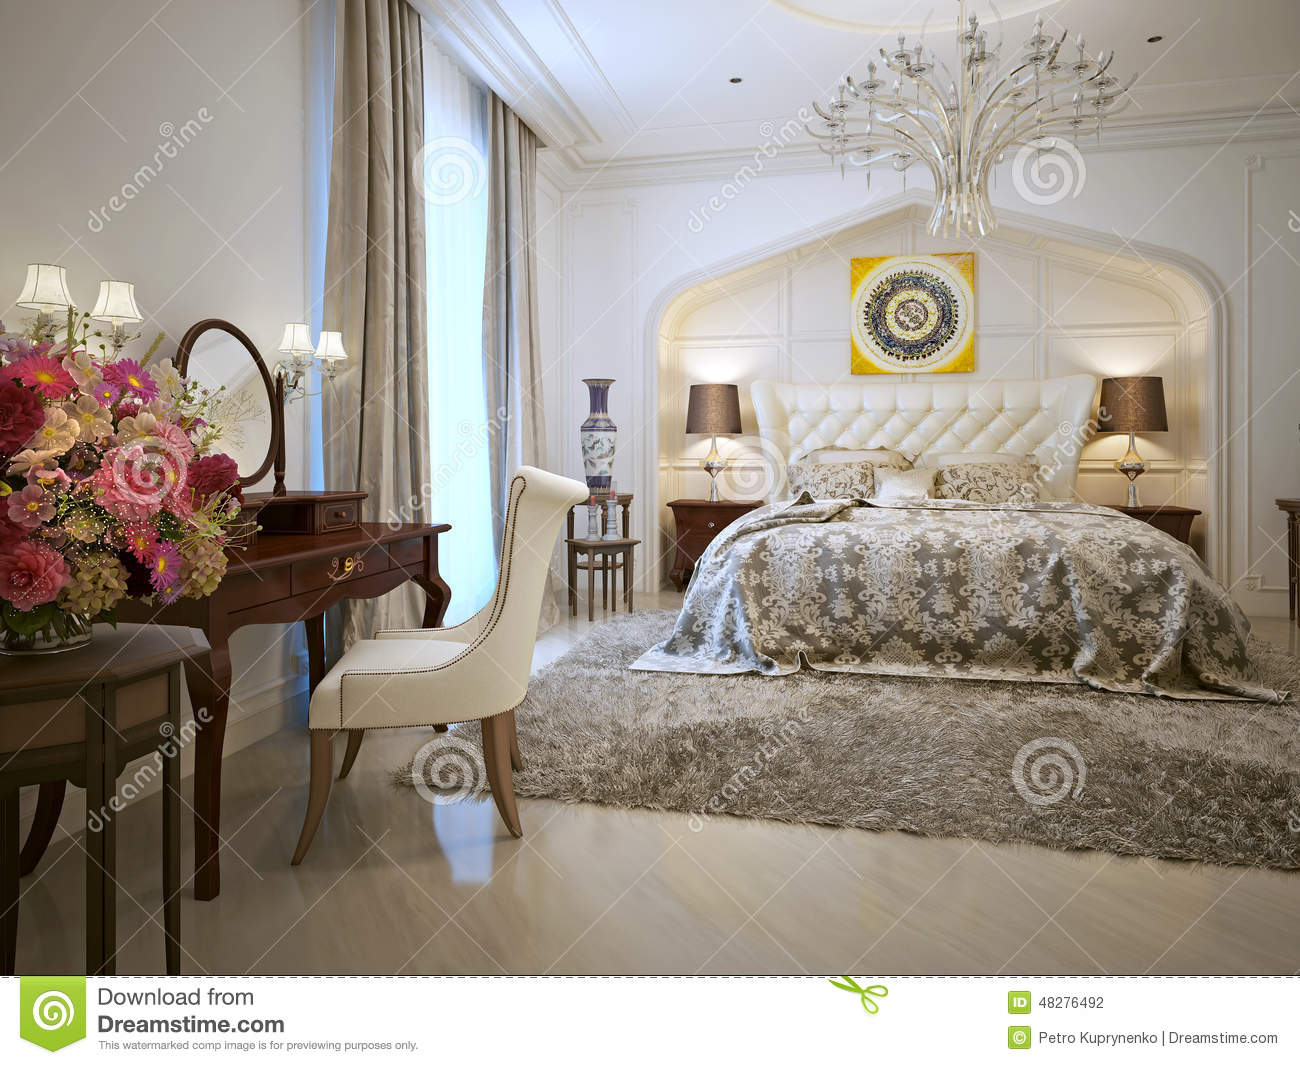 style d 39 oriental de chambre coucher illustration stock image 48276492. Black Bedroom Furniture Sets. Home Design Ideas